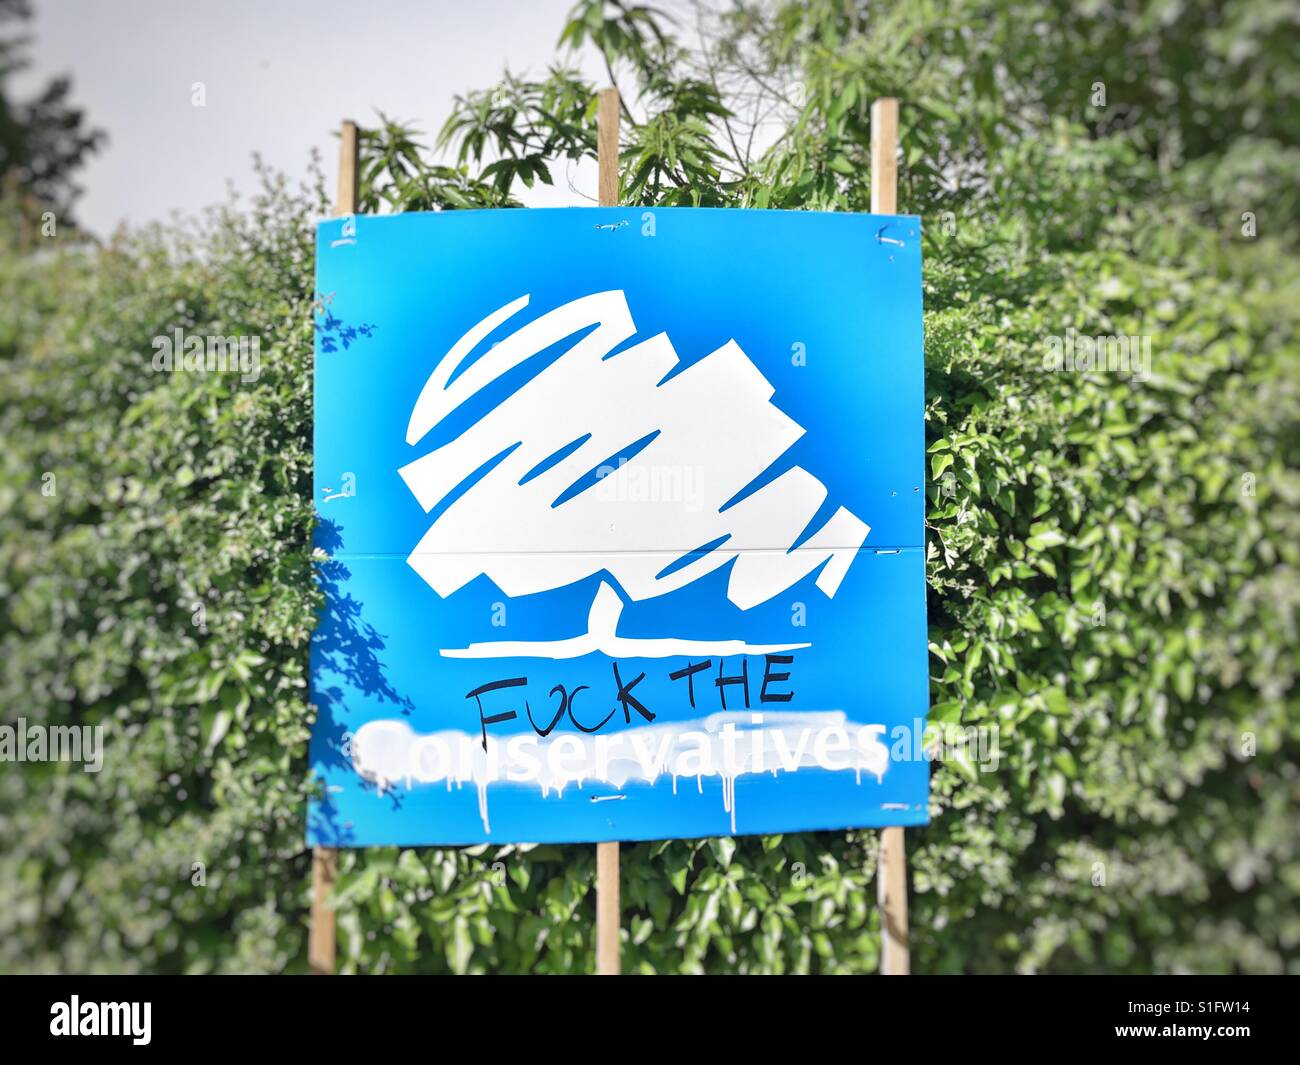 Defaced Conservative Party Placard, Sutton, Suffolk. 22/05/17 - Stock Image